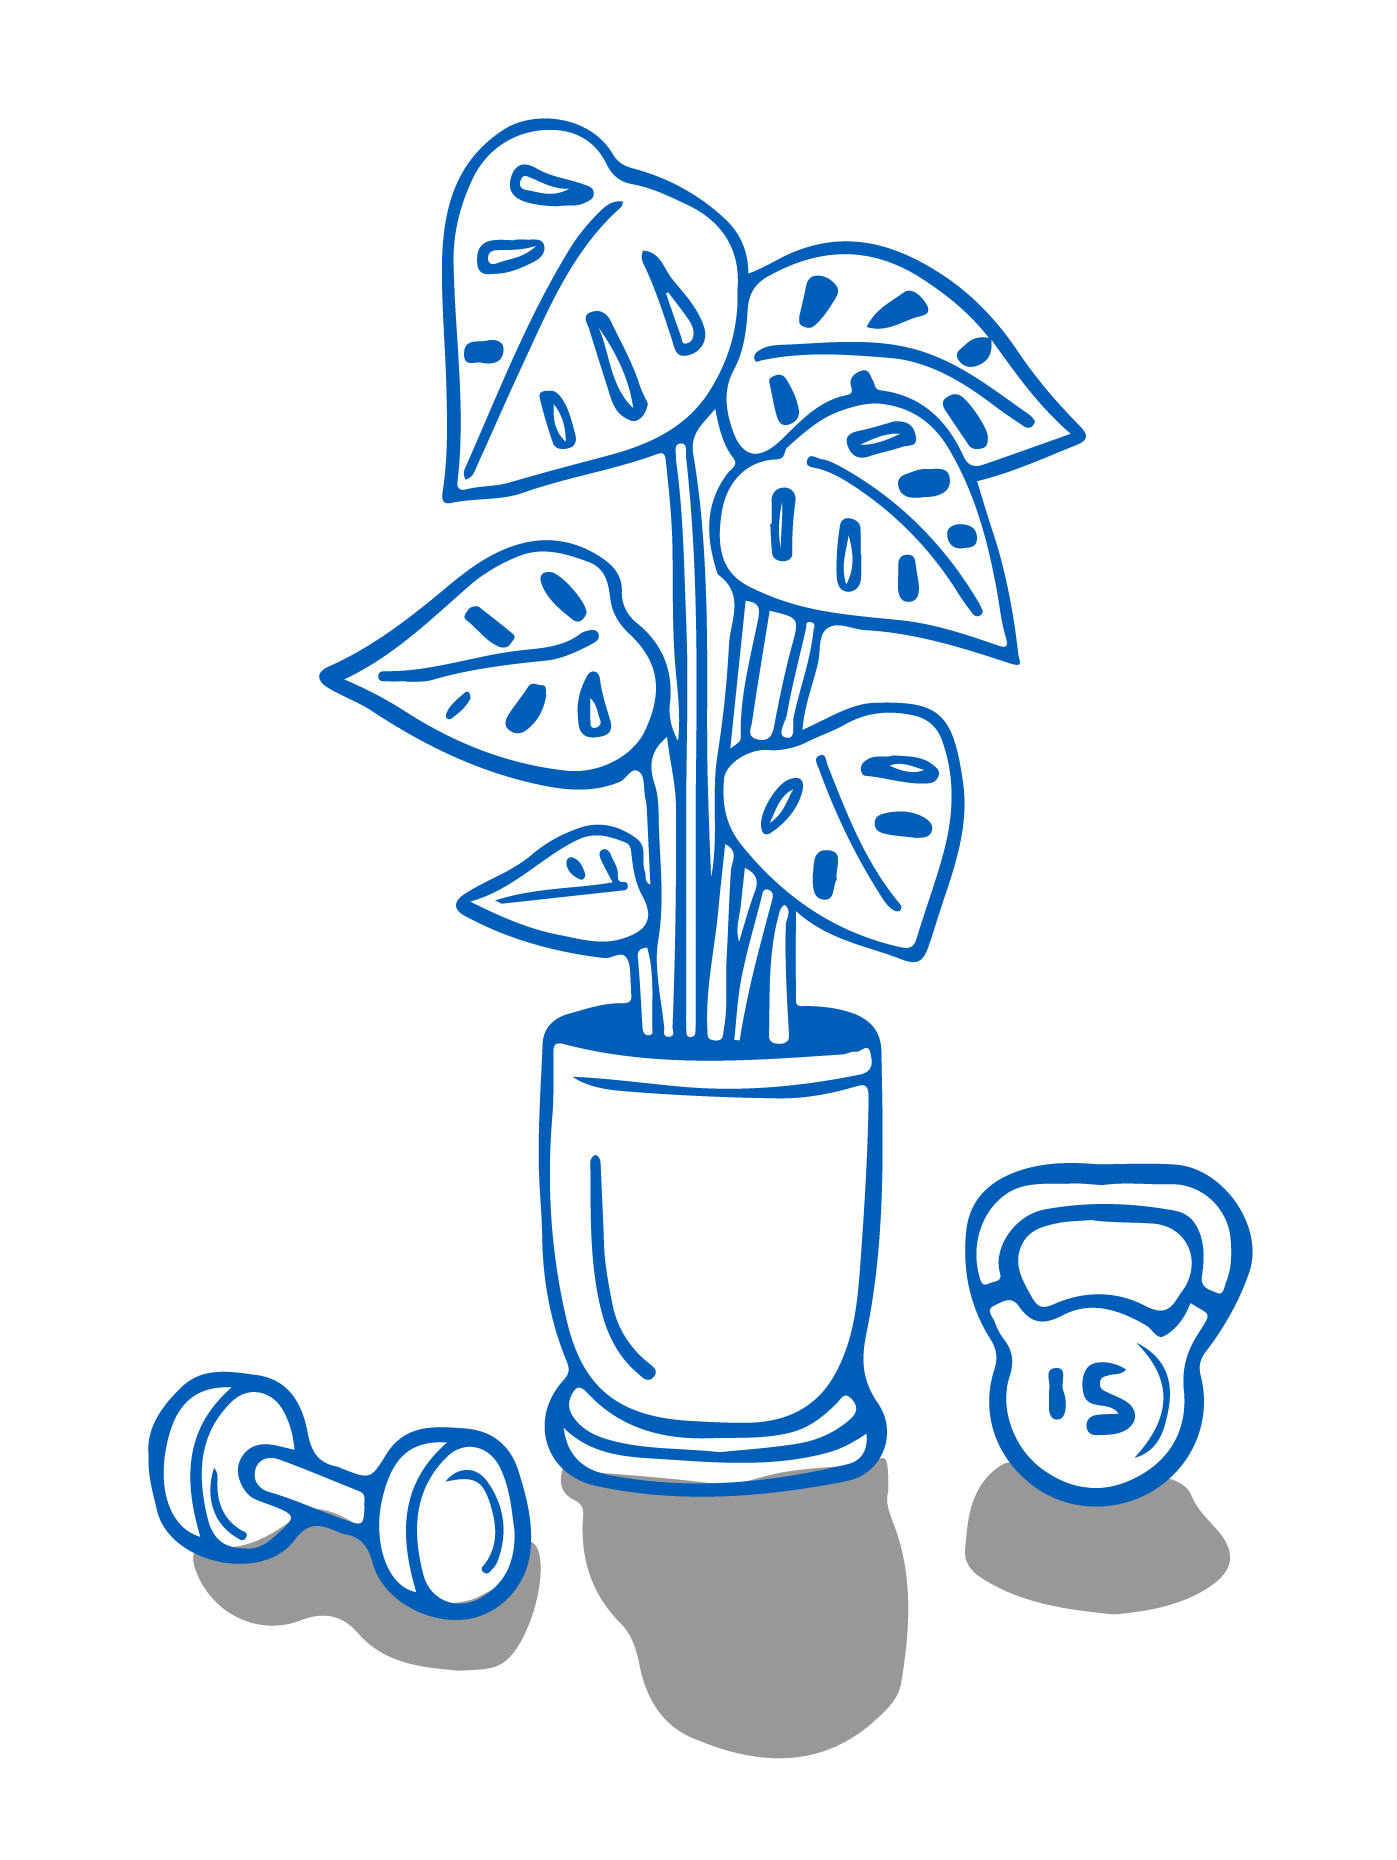 A houseplant sits on the floor between a single dumbbell and a kettlebell.